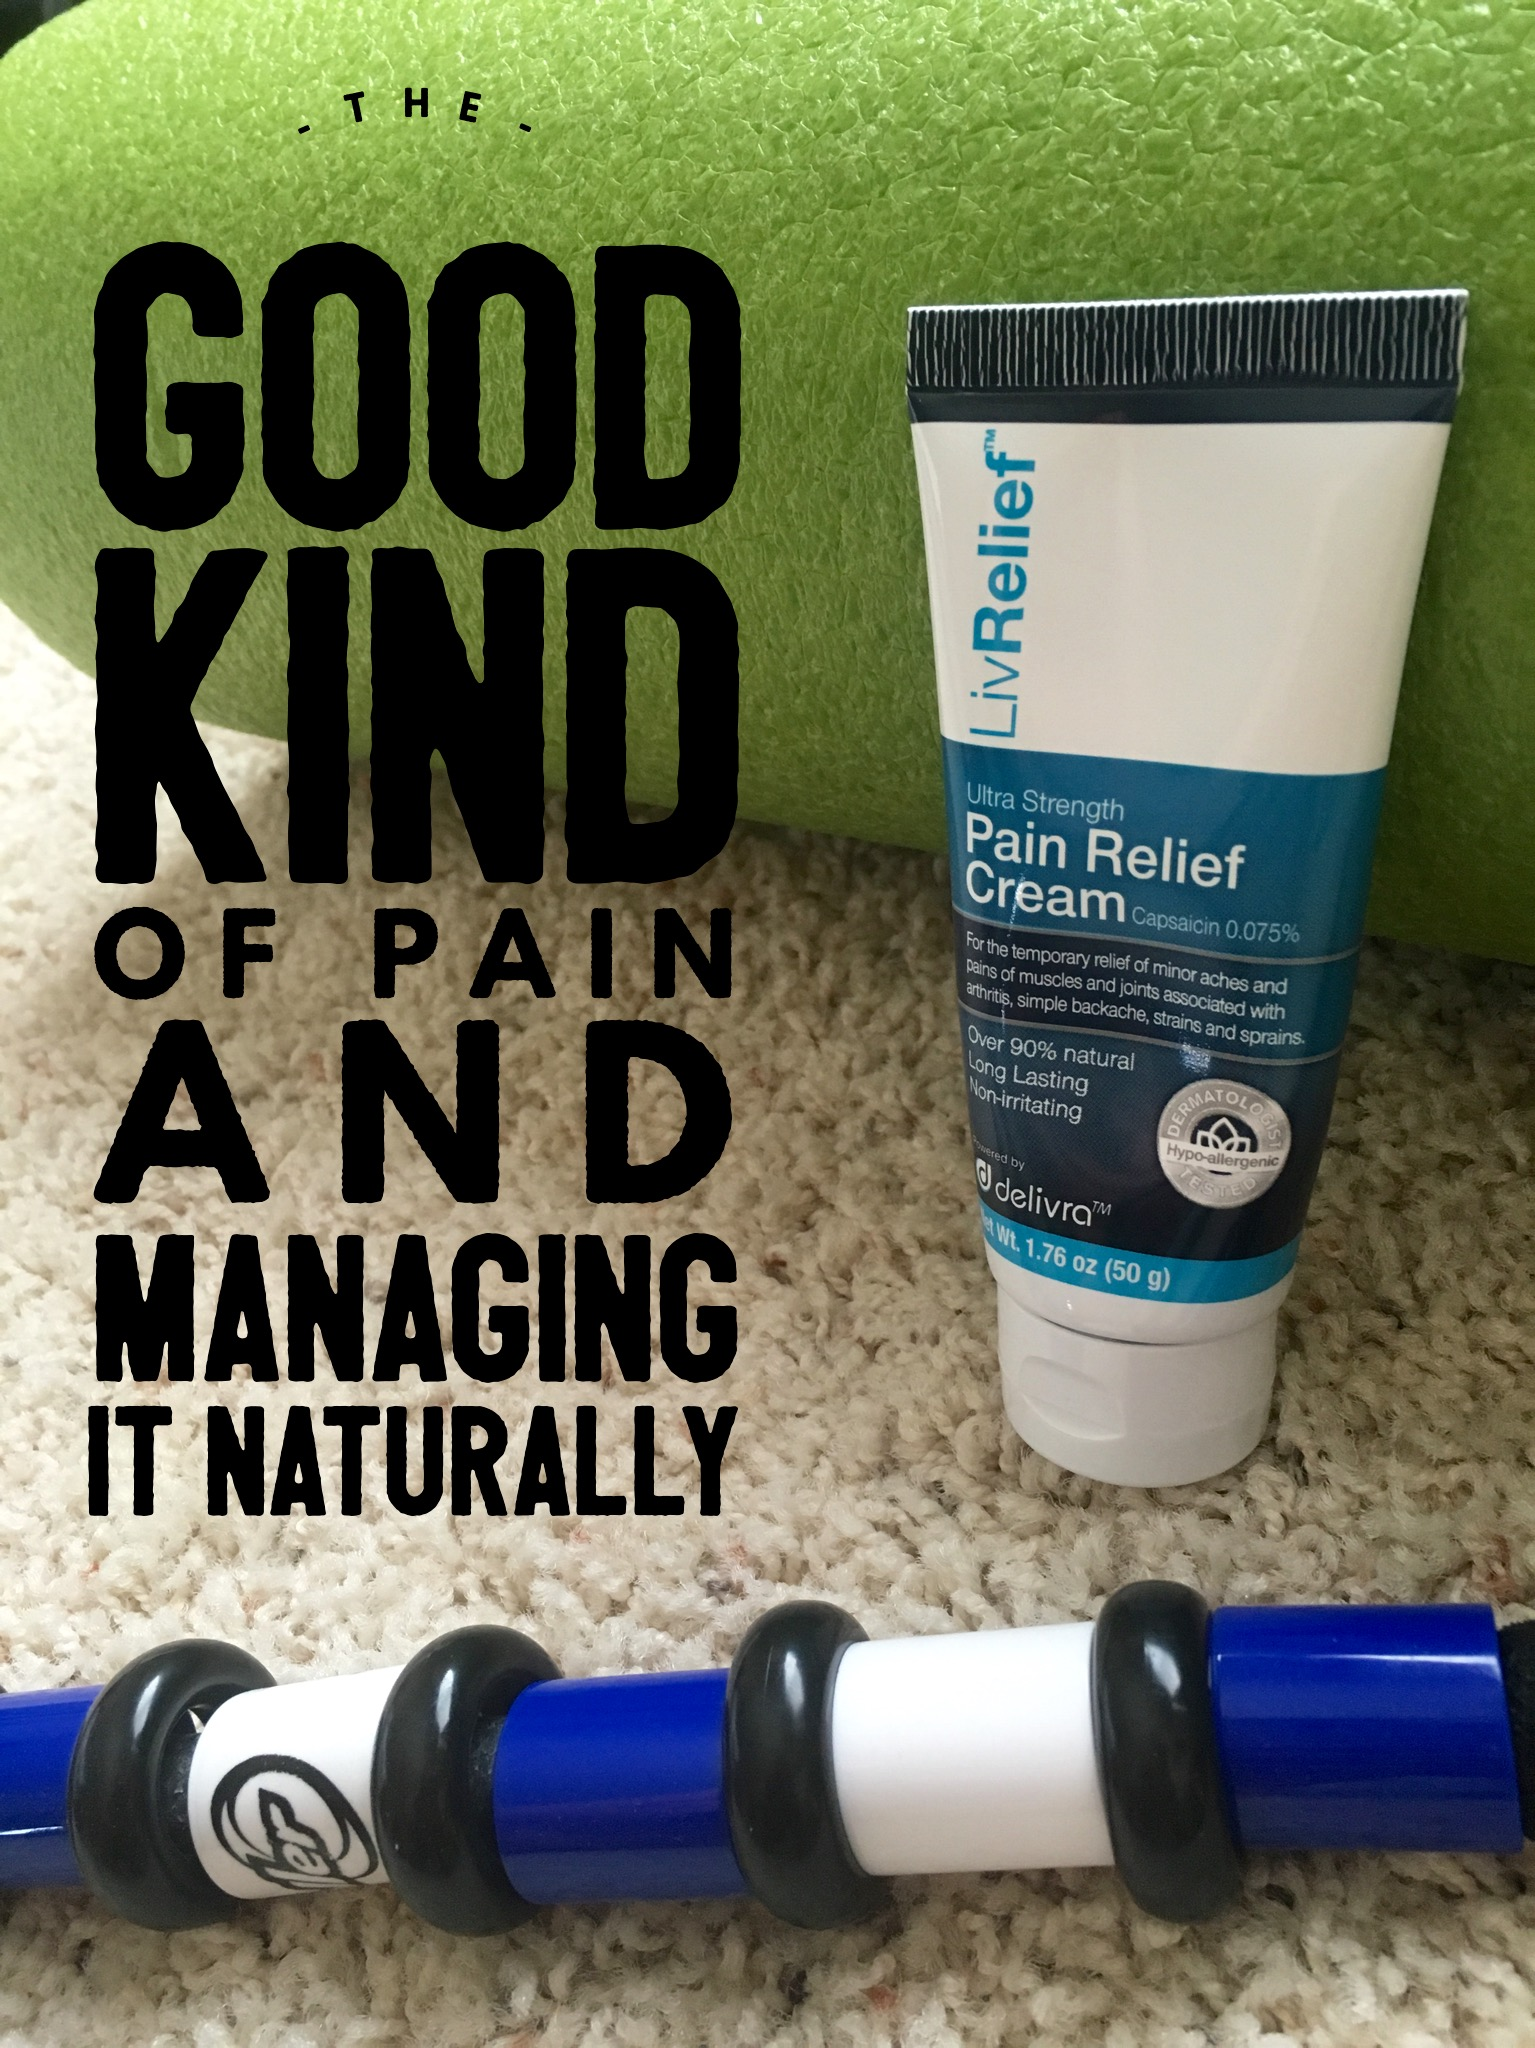 The Good Kind of Pain and Managing It Naturally